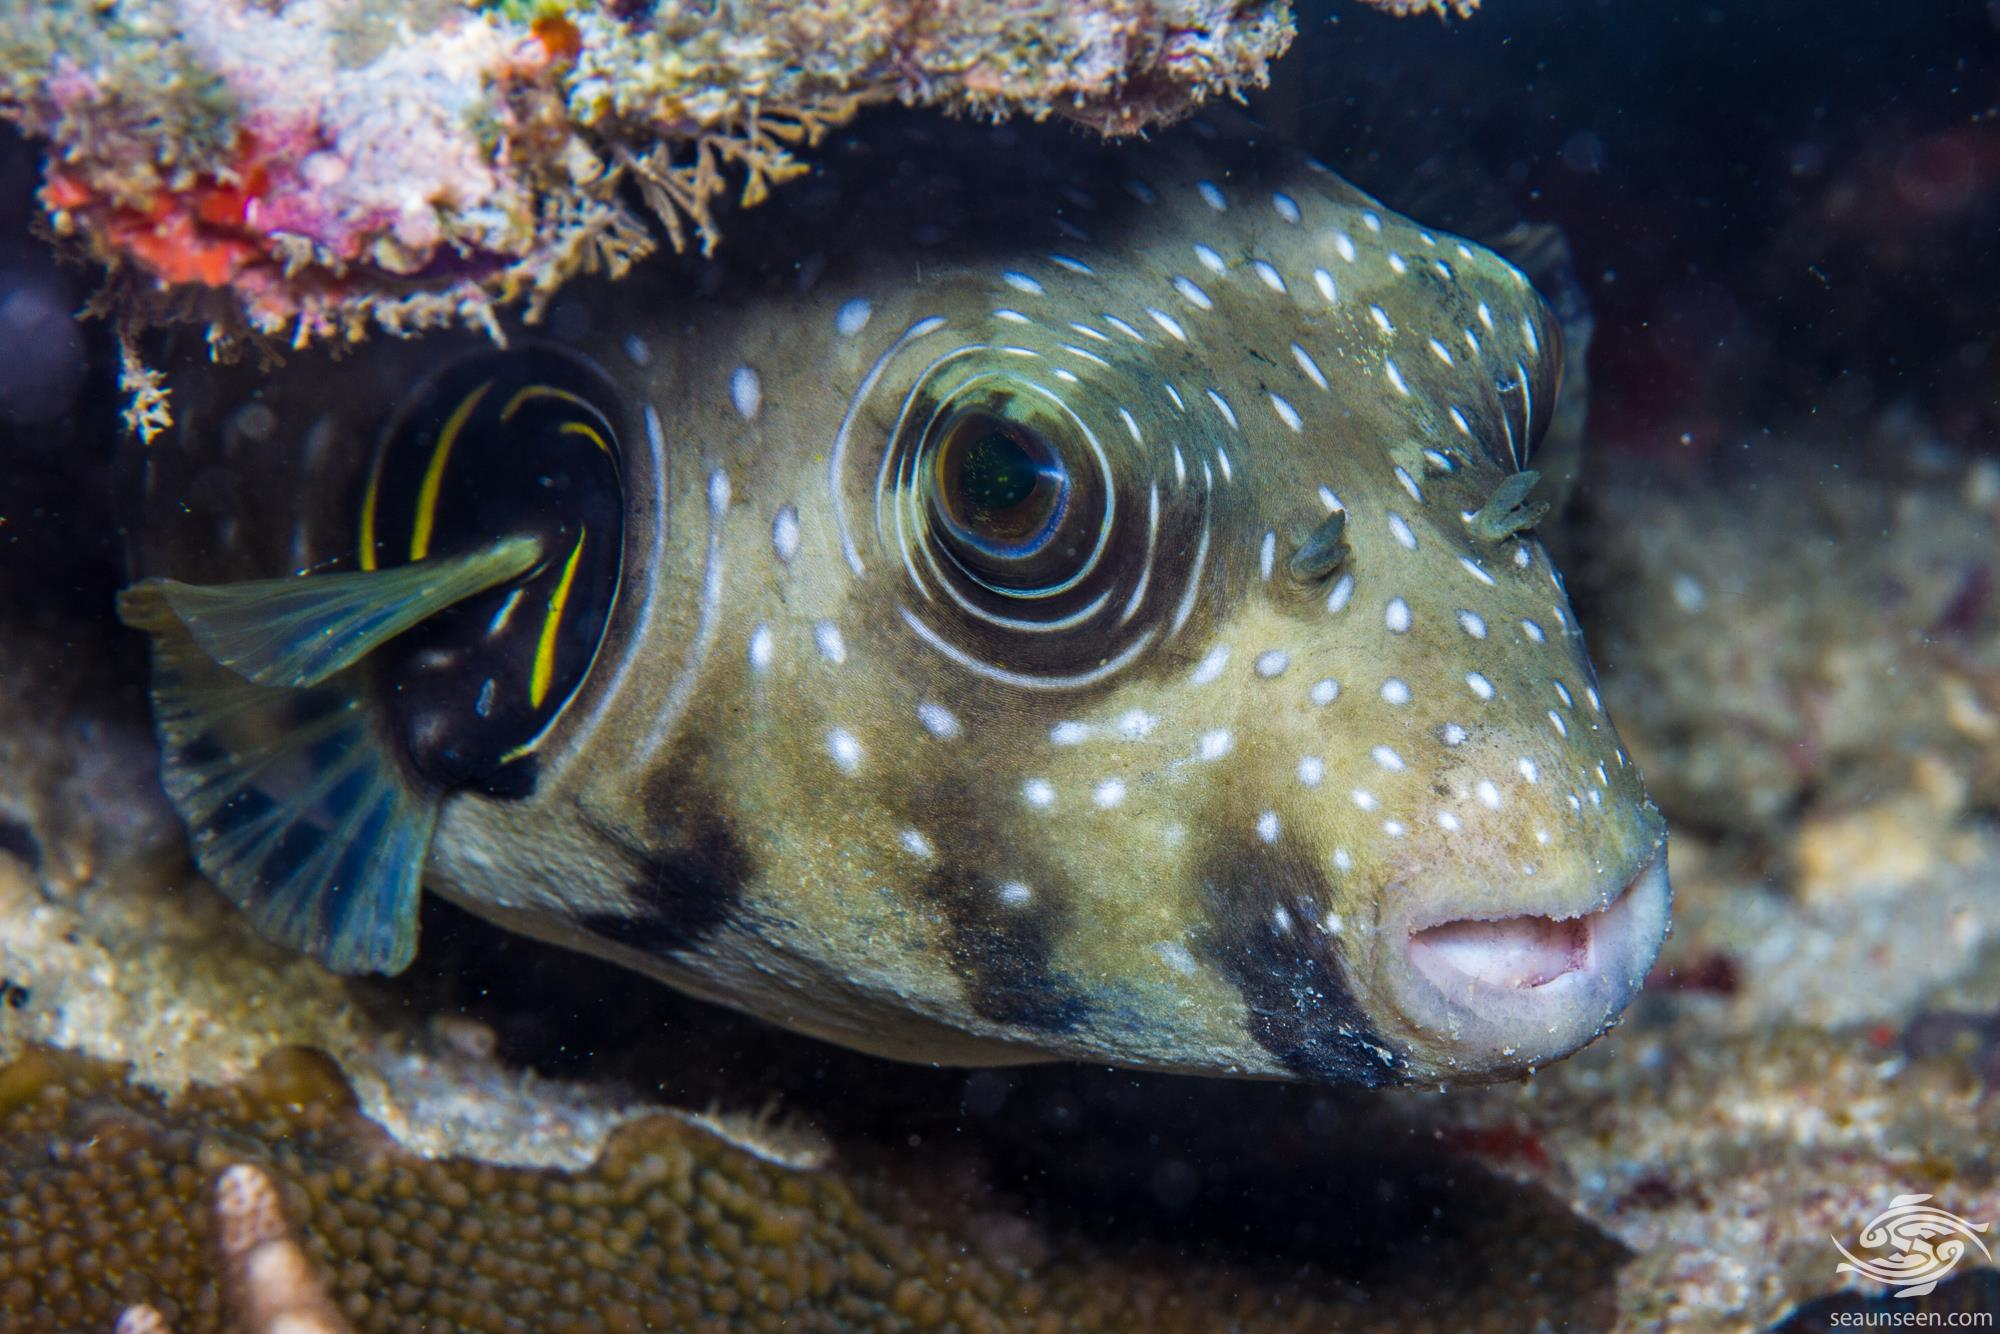 white spotted pufferfish or blowfish, Arothron hispidus